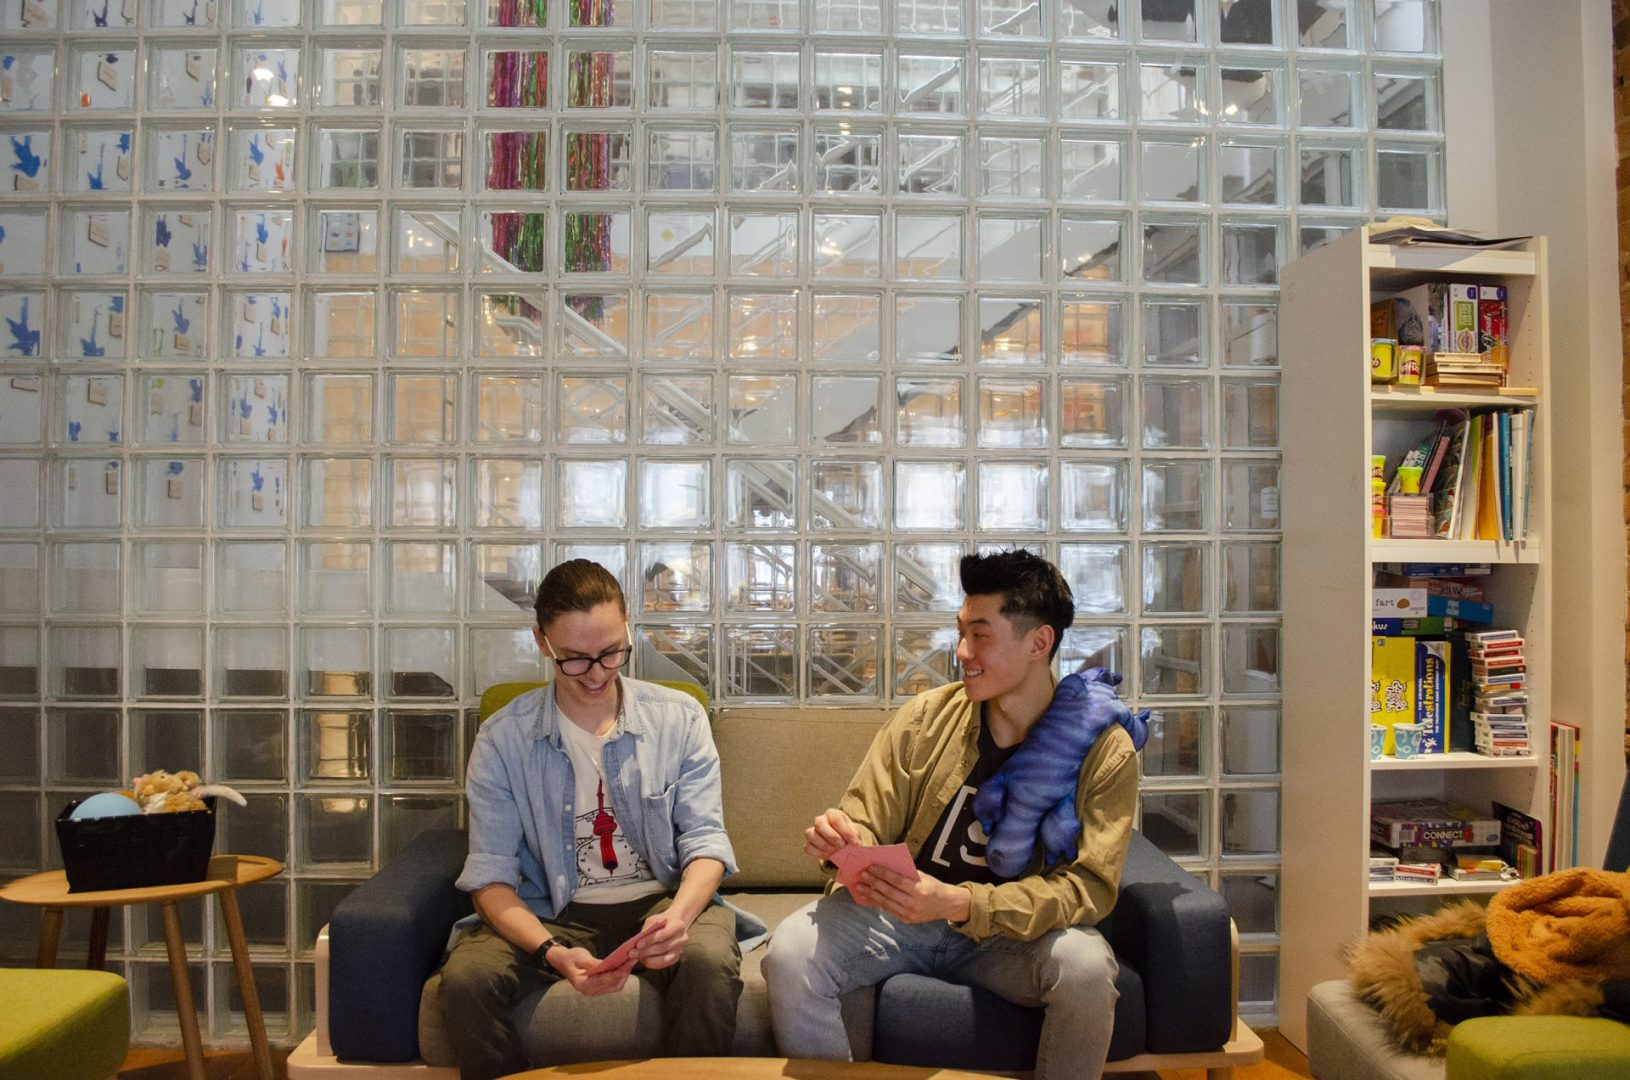 Alex and Wing sitting together on the couch in the Stella's Place cafe with a big tiled glass wall in the background